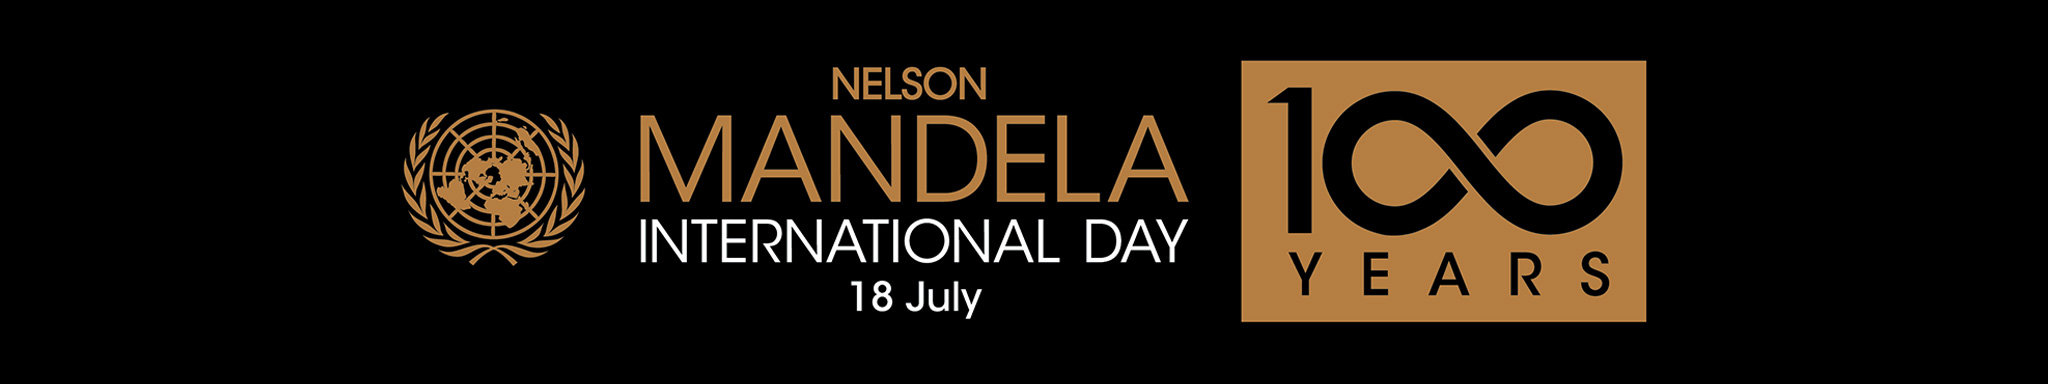 Nelson Mandela International Day - 18 July